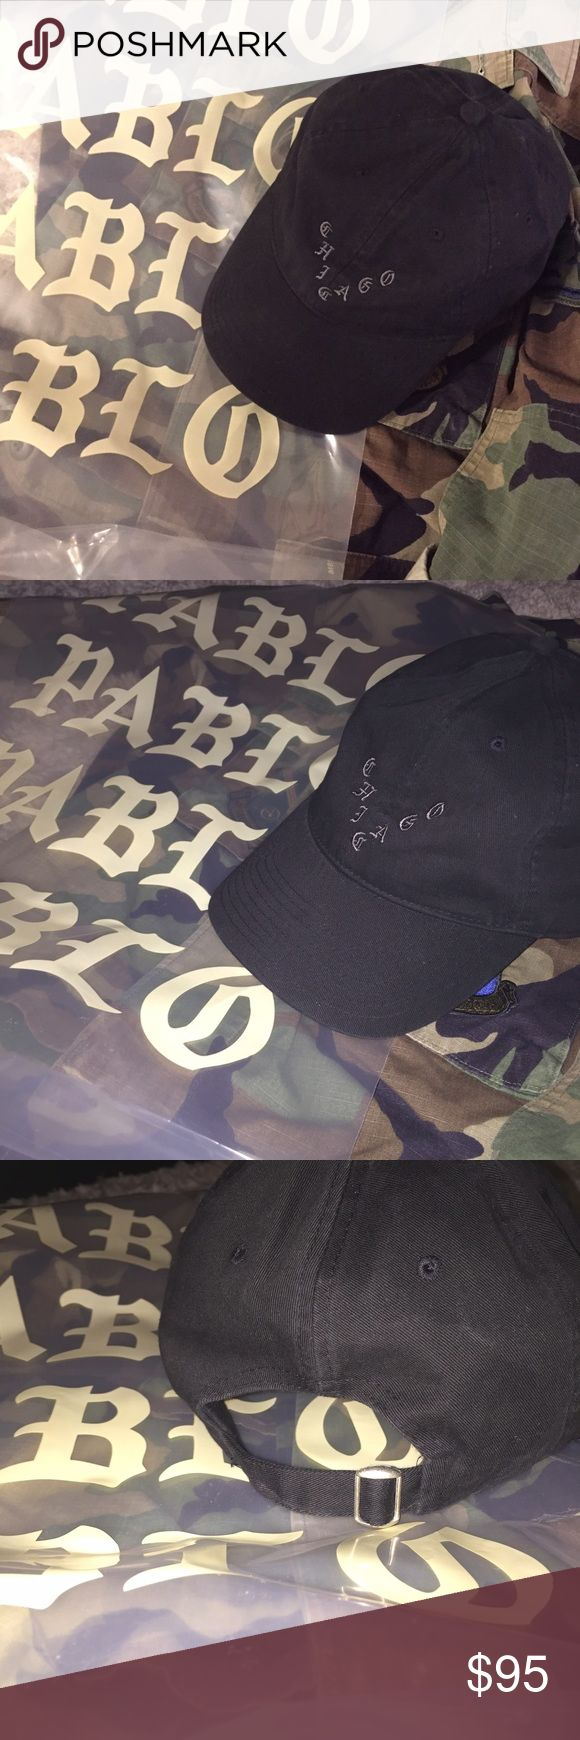 """KANYE WEST PABLO - Pop Up Shop - CHICAGO Dad Hat *PRICE DROPPED* New! PABLO MERCH! AKA Kanye West's I FEEL LIKE PABLO tour merchandise. """"Chicago"""". Authentic. UNISEX. Never worn. Arrived with No Tags. It's more of a vintage black color with gray stitching. Adjustable back. Plastic bag not included. Dad Hat style. Pablo Merch Accessories Hats"""